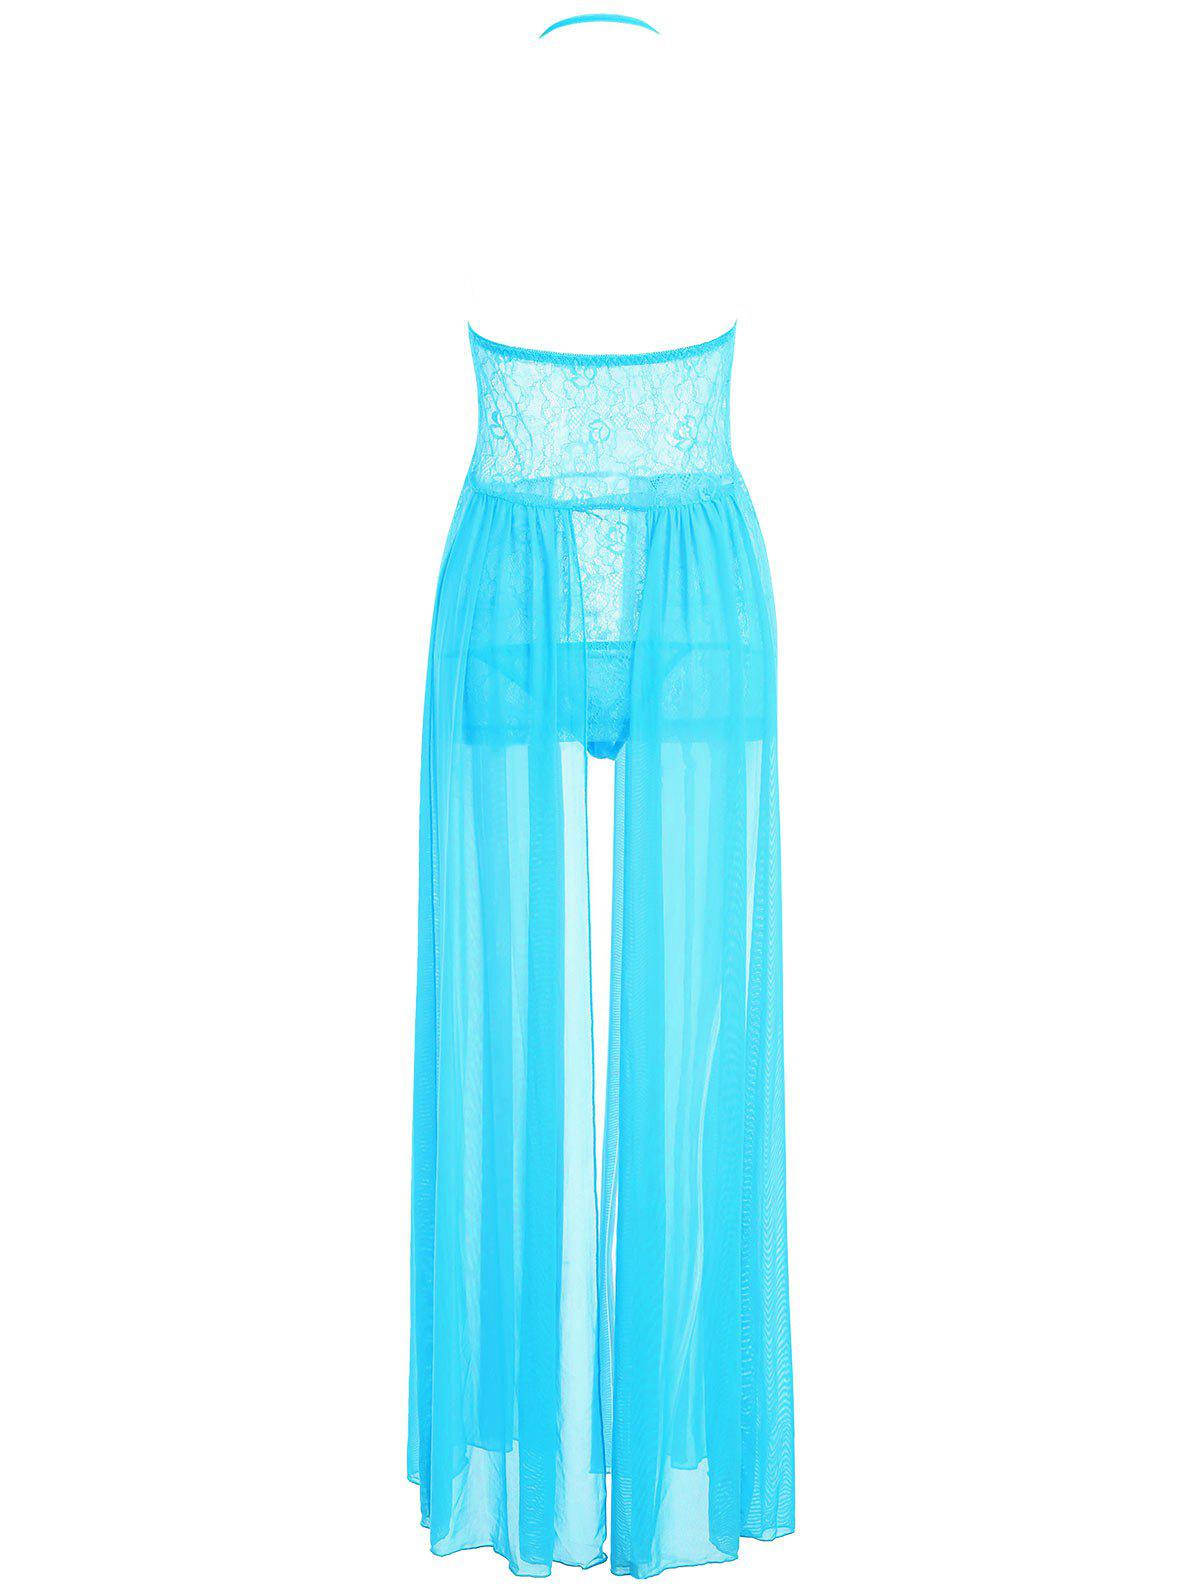 Mesh Sheer Overlay Lace Long Dress - BLUE ONE SIZE